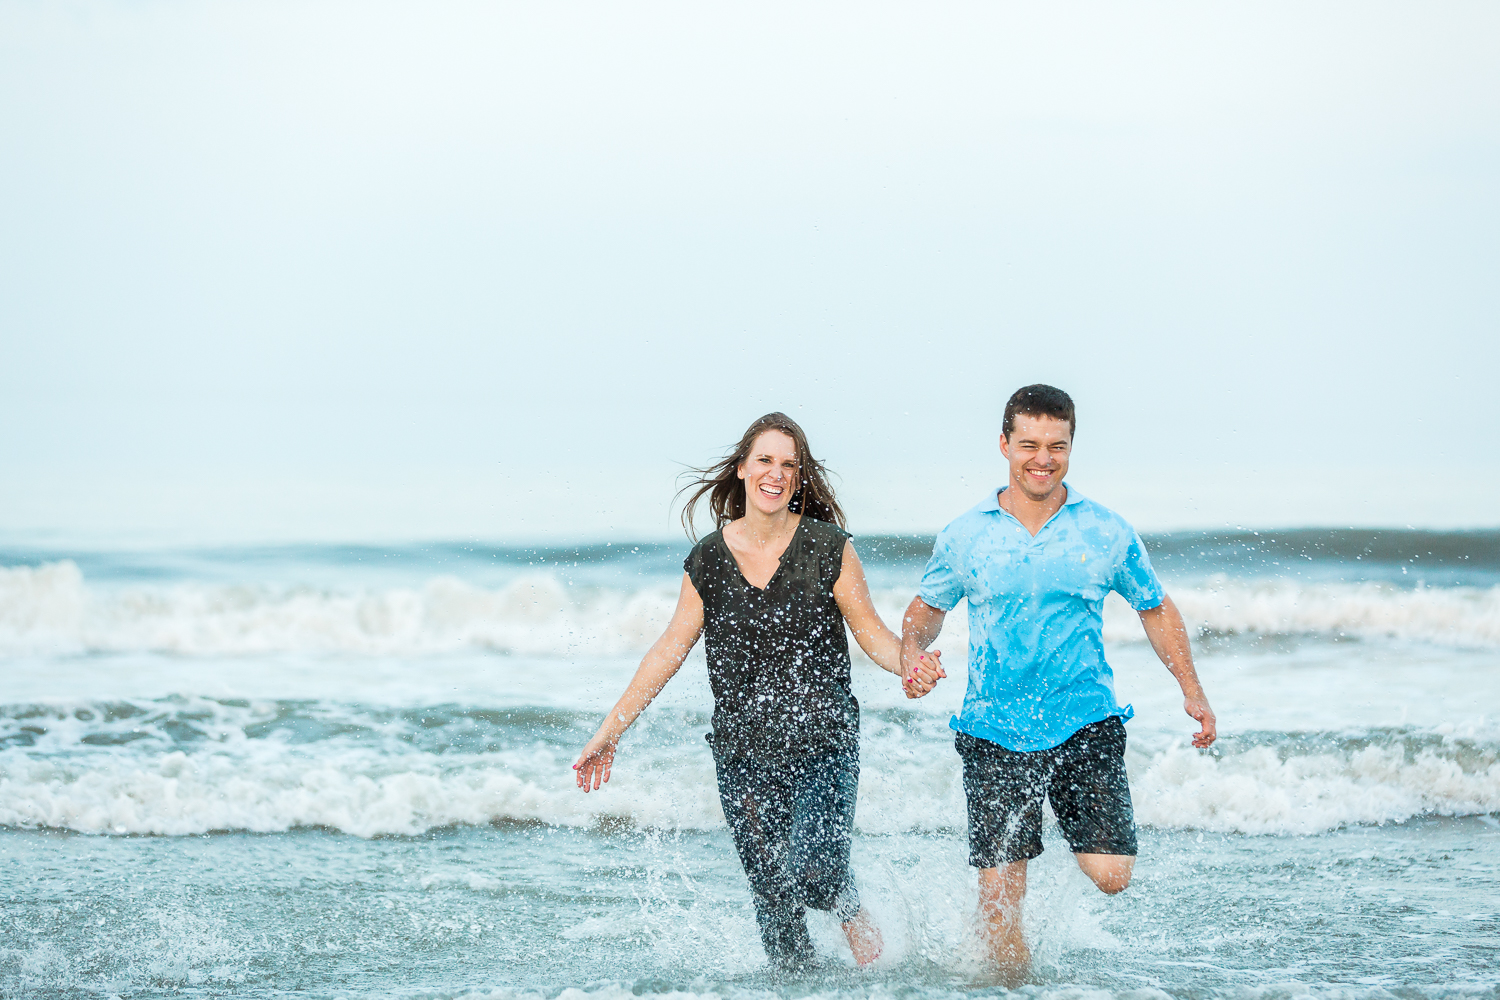 running into the ocean during engagement session